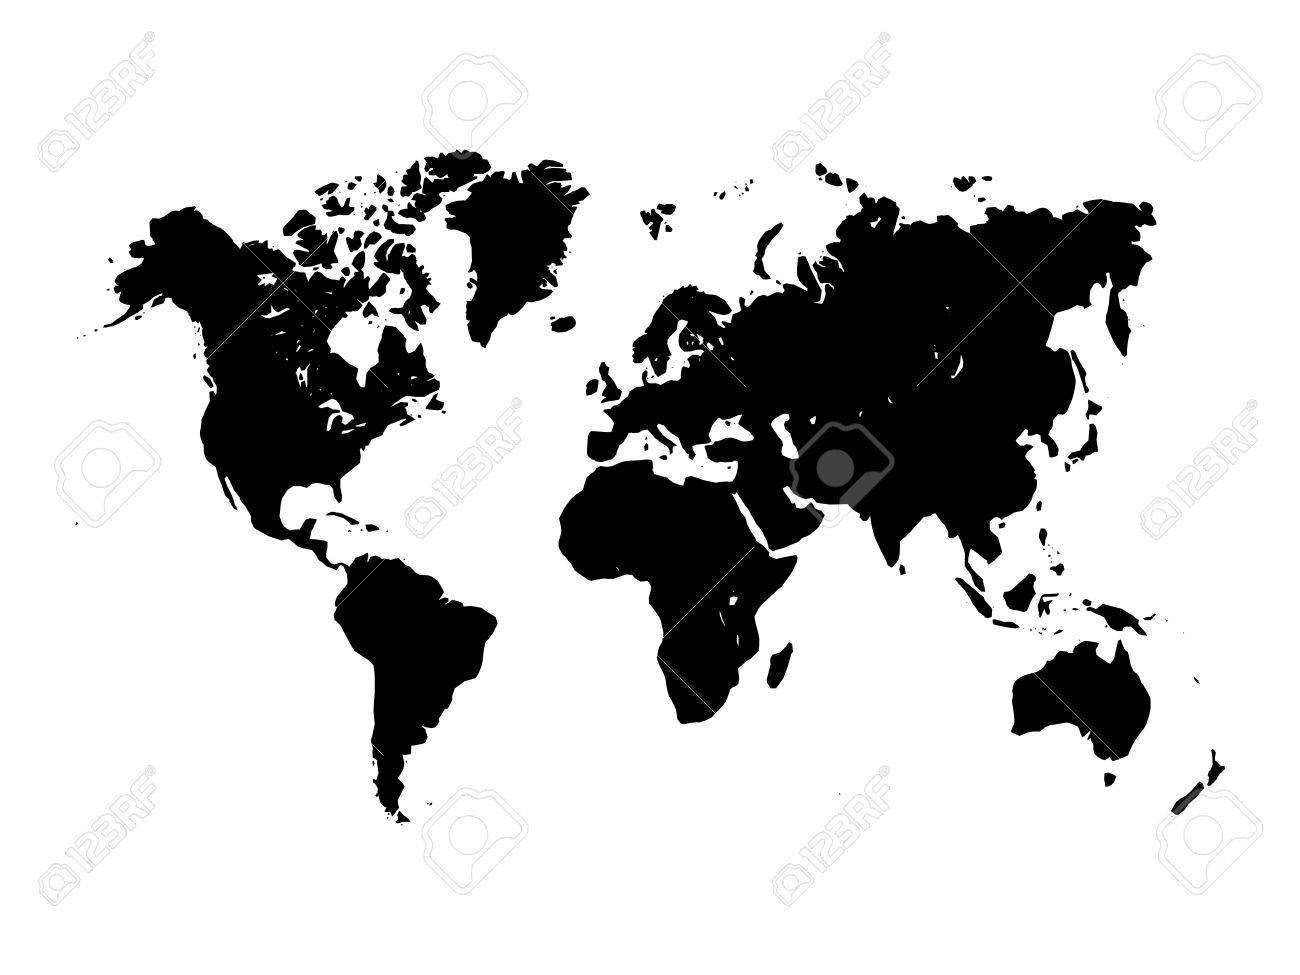 Map of world black silhouette on white background simplified map of world black silhouette on white background simplified world map stock vector gumiabroncs Images